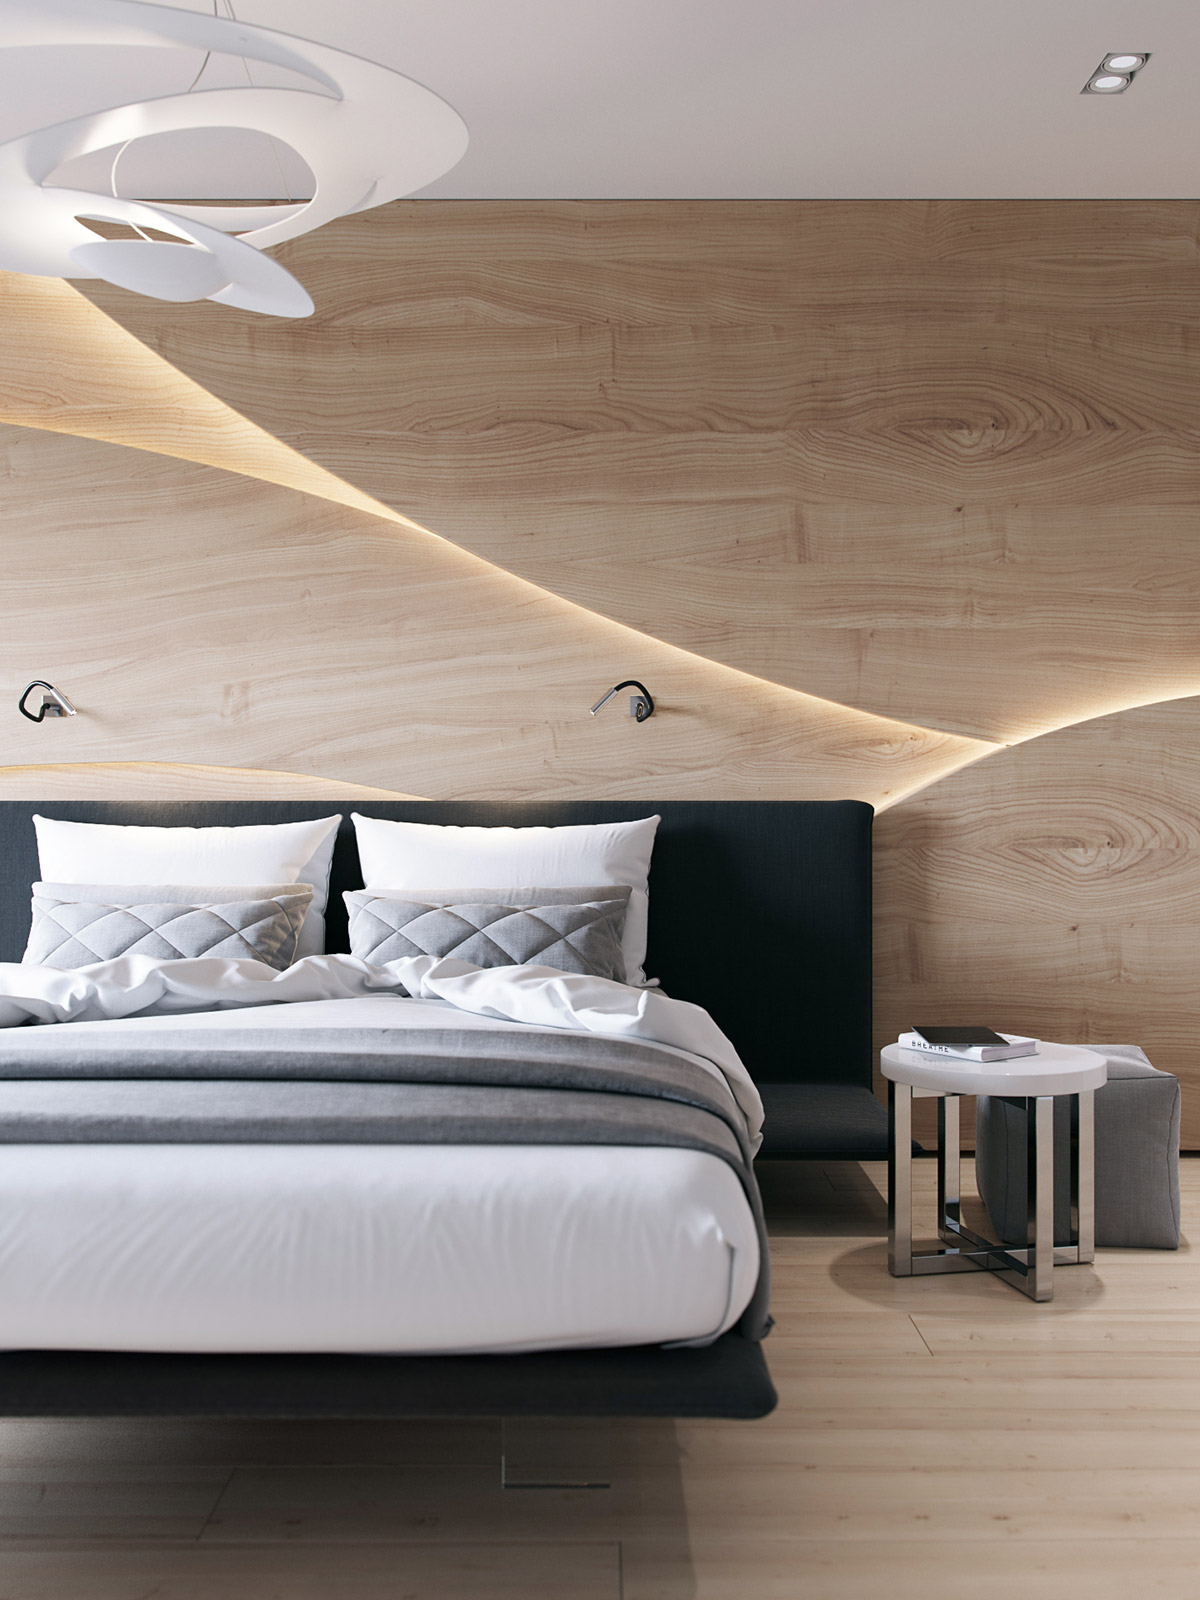 Wondrous Wooden Wall Designs 30 Striking Bedrooms That Use The Wood Finish Inspirational Interior Design Netriciaus